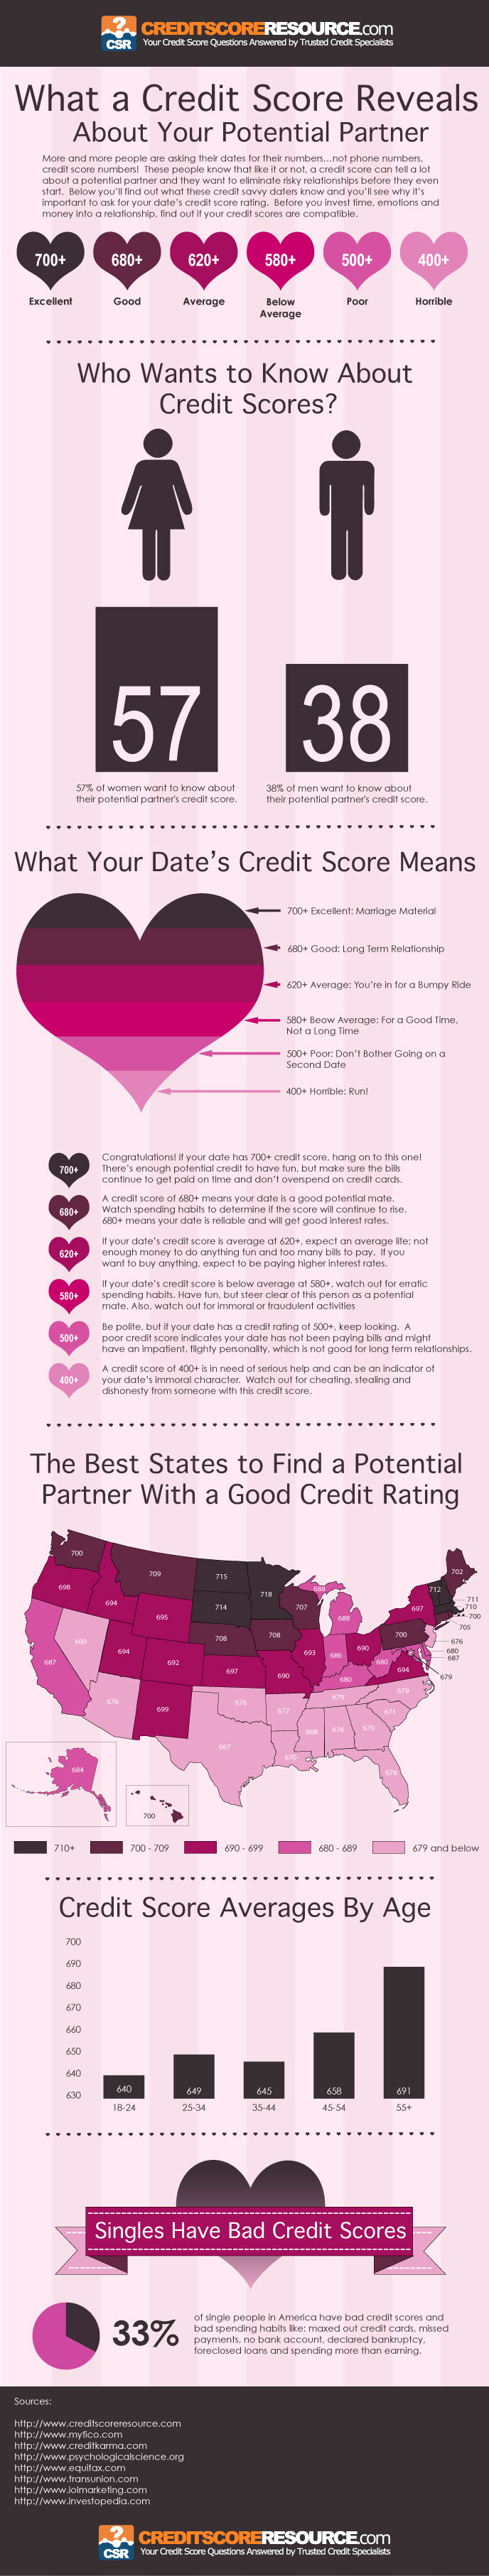 credit scores and dating infographic